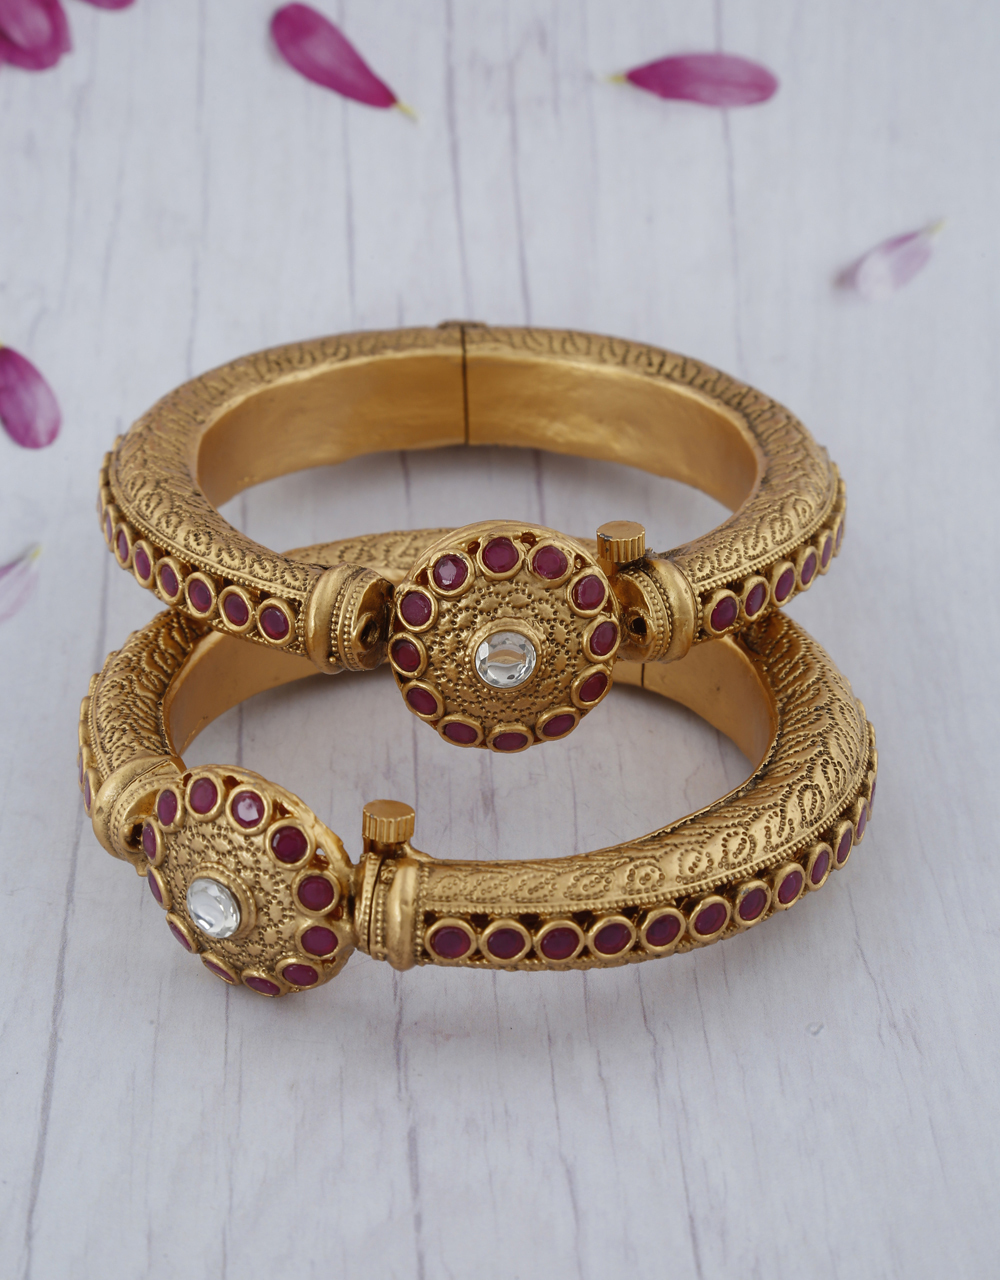 Round shape designer finely decorated with pink stone and matte gold finish bangles for women